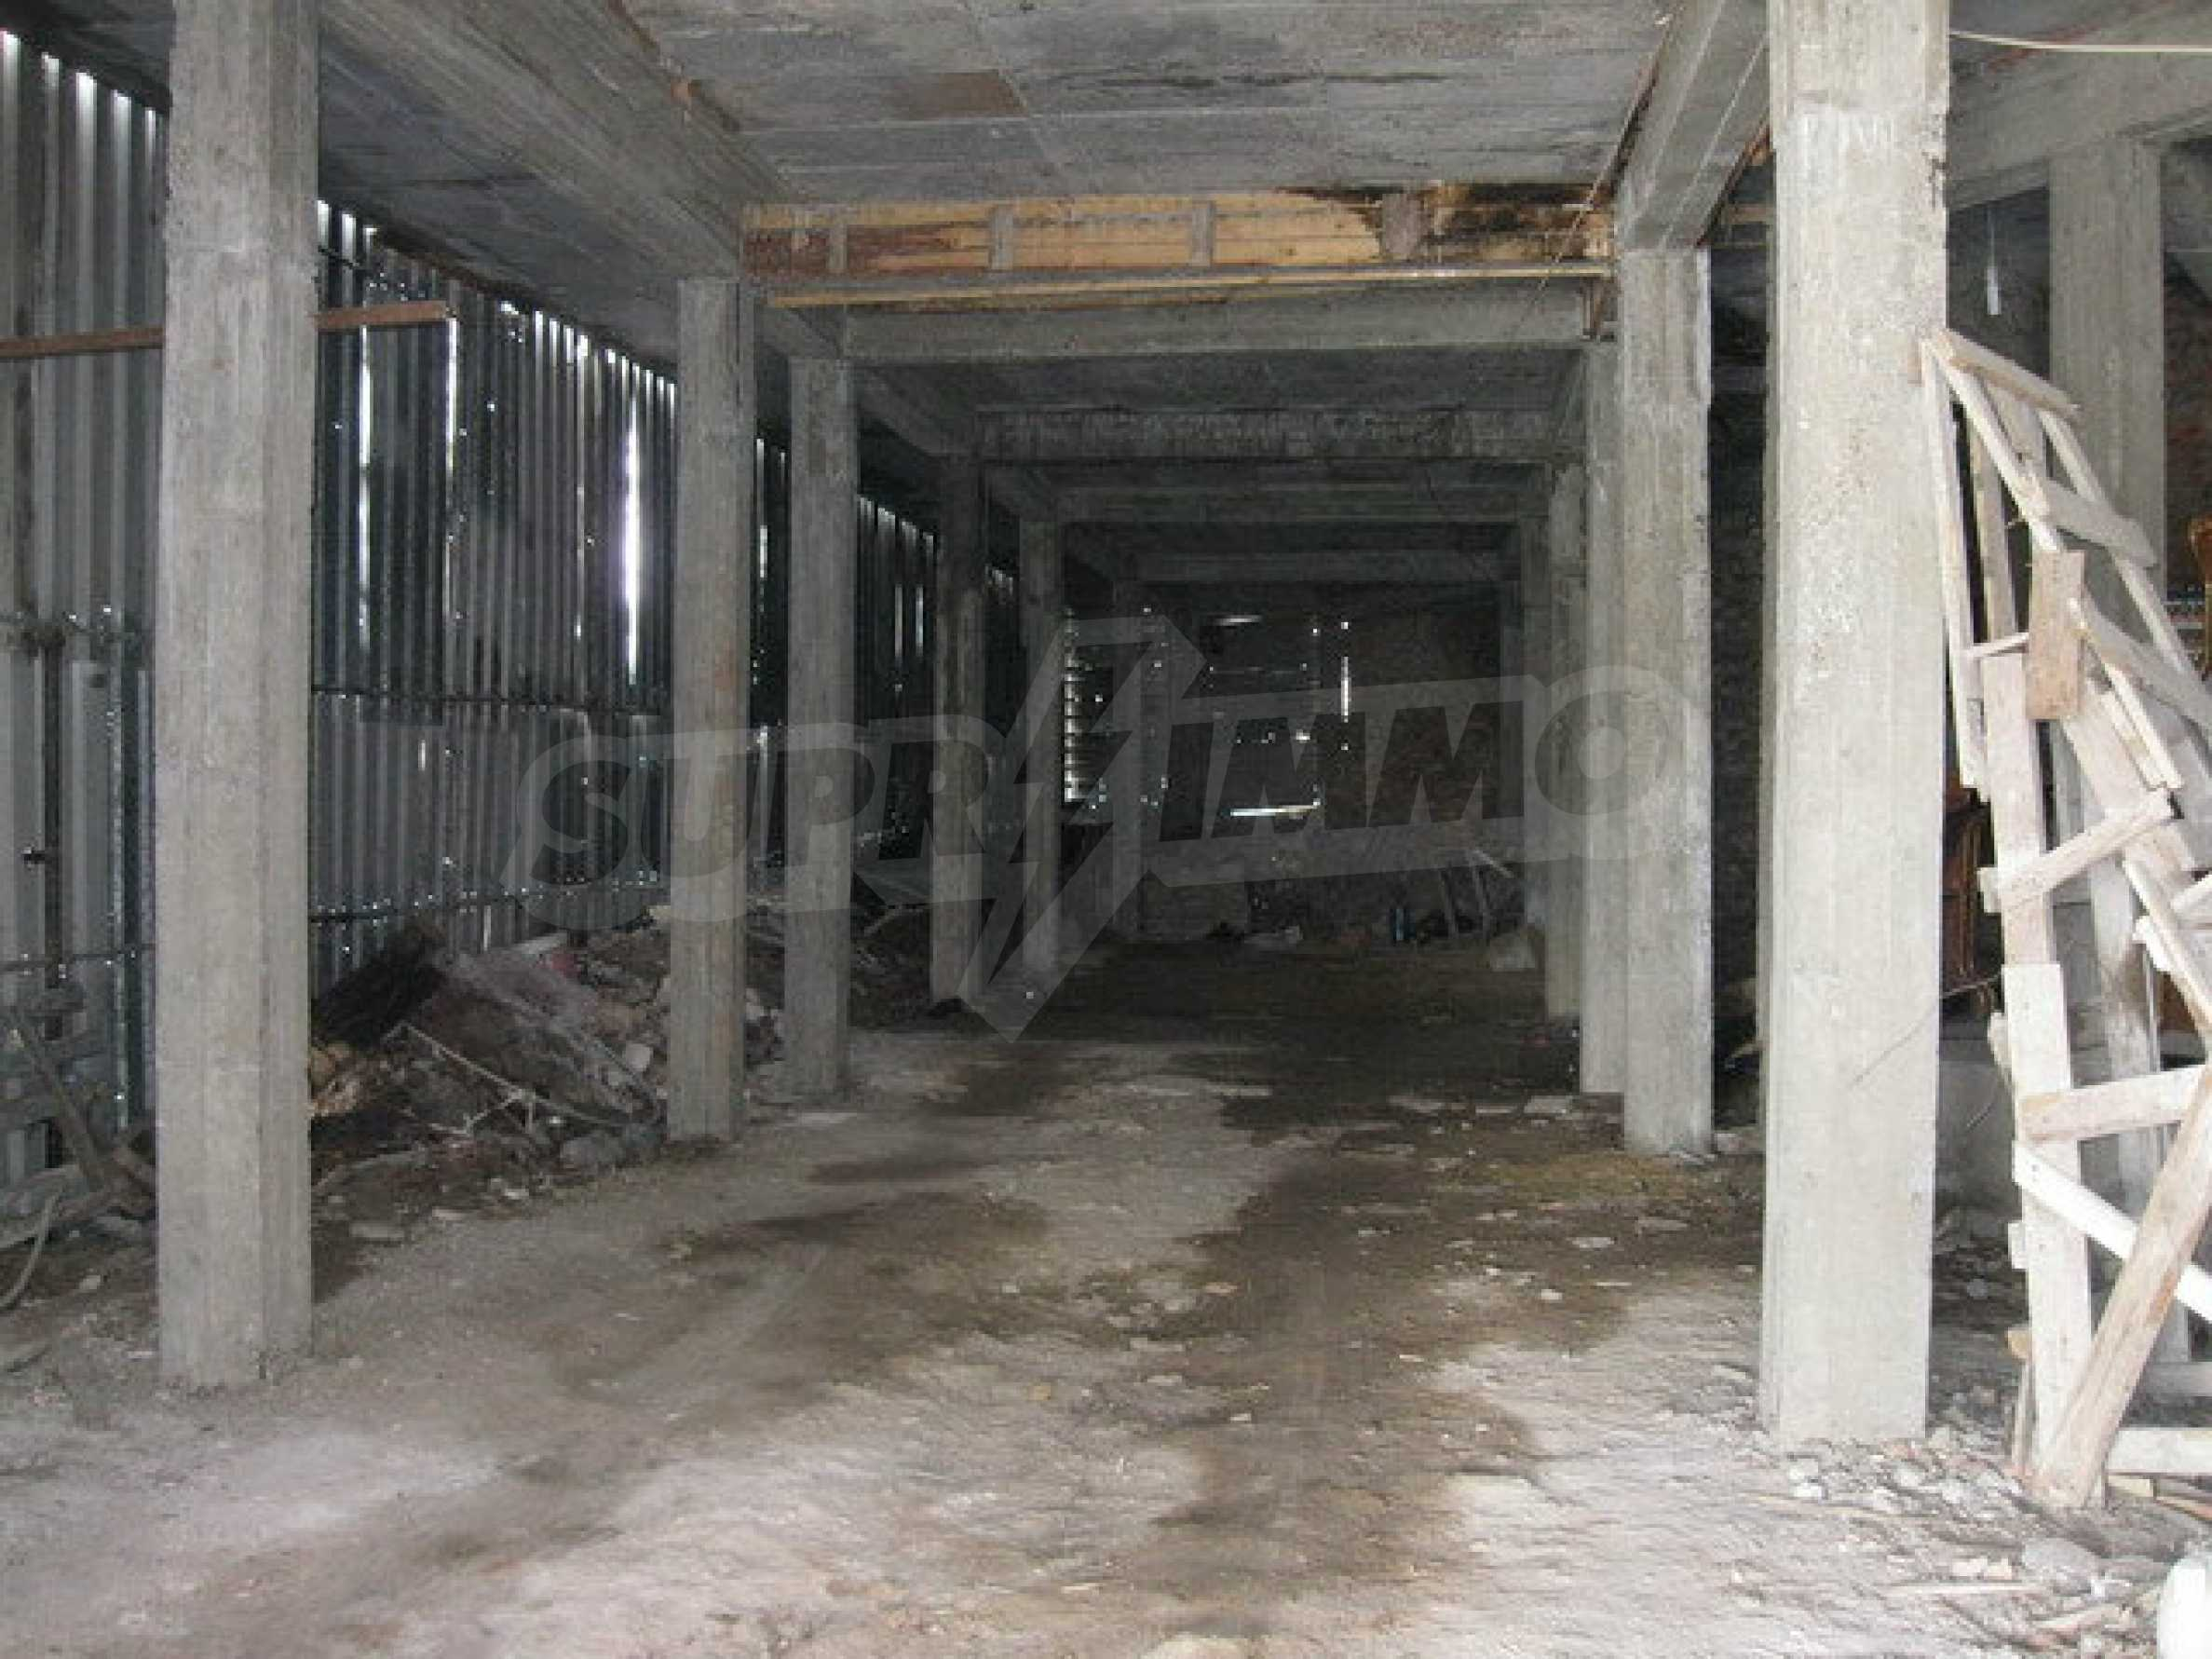 Commercial property on 3 levels for sale in Veliko Tarnovo  11